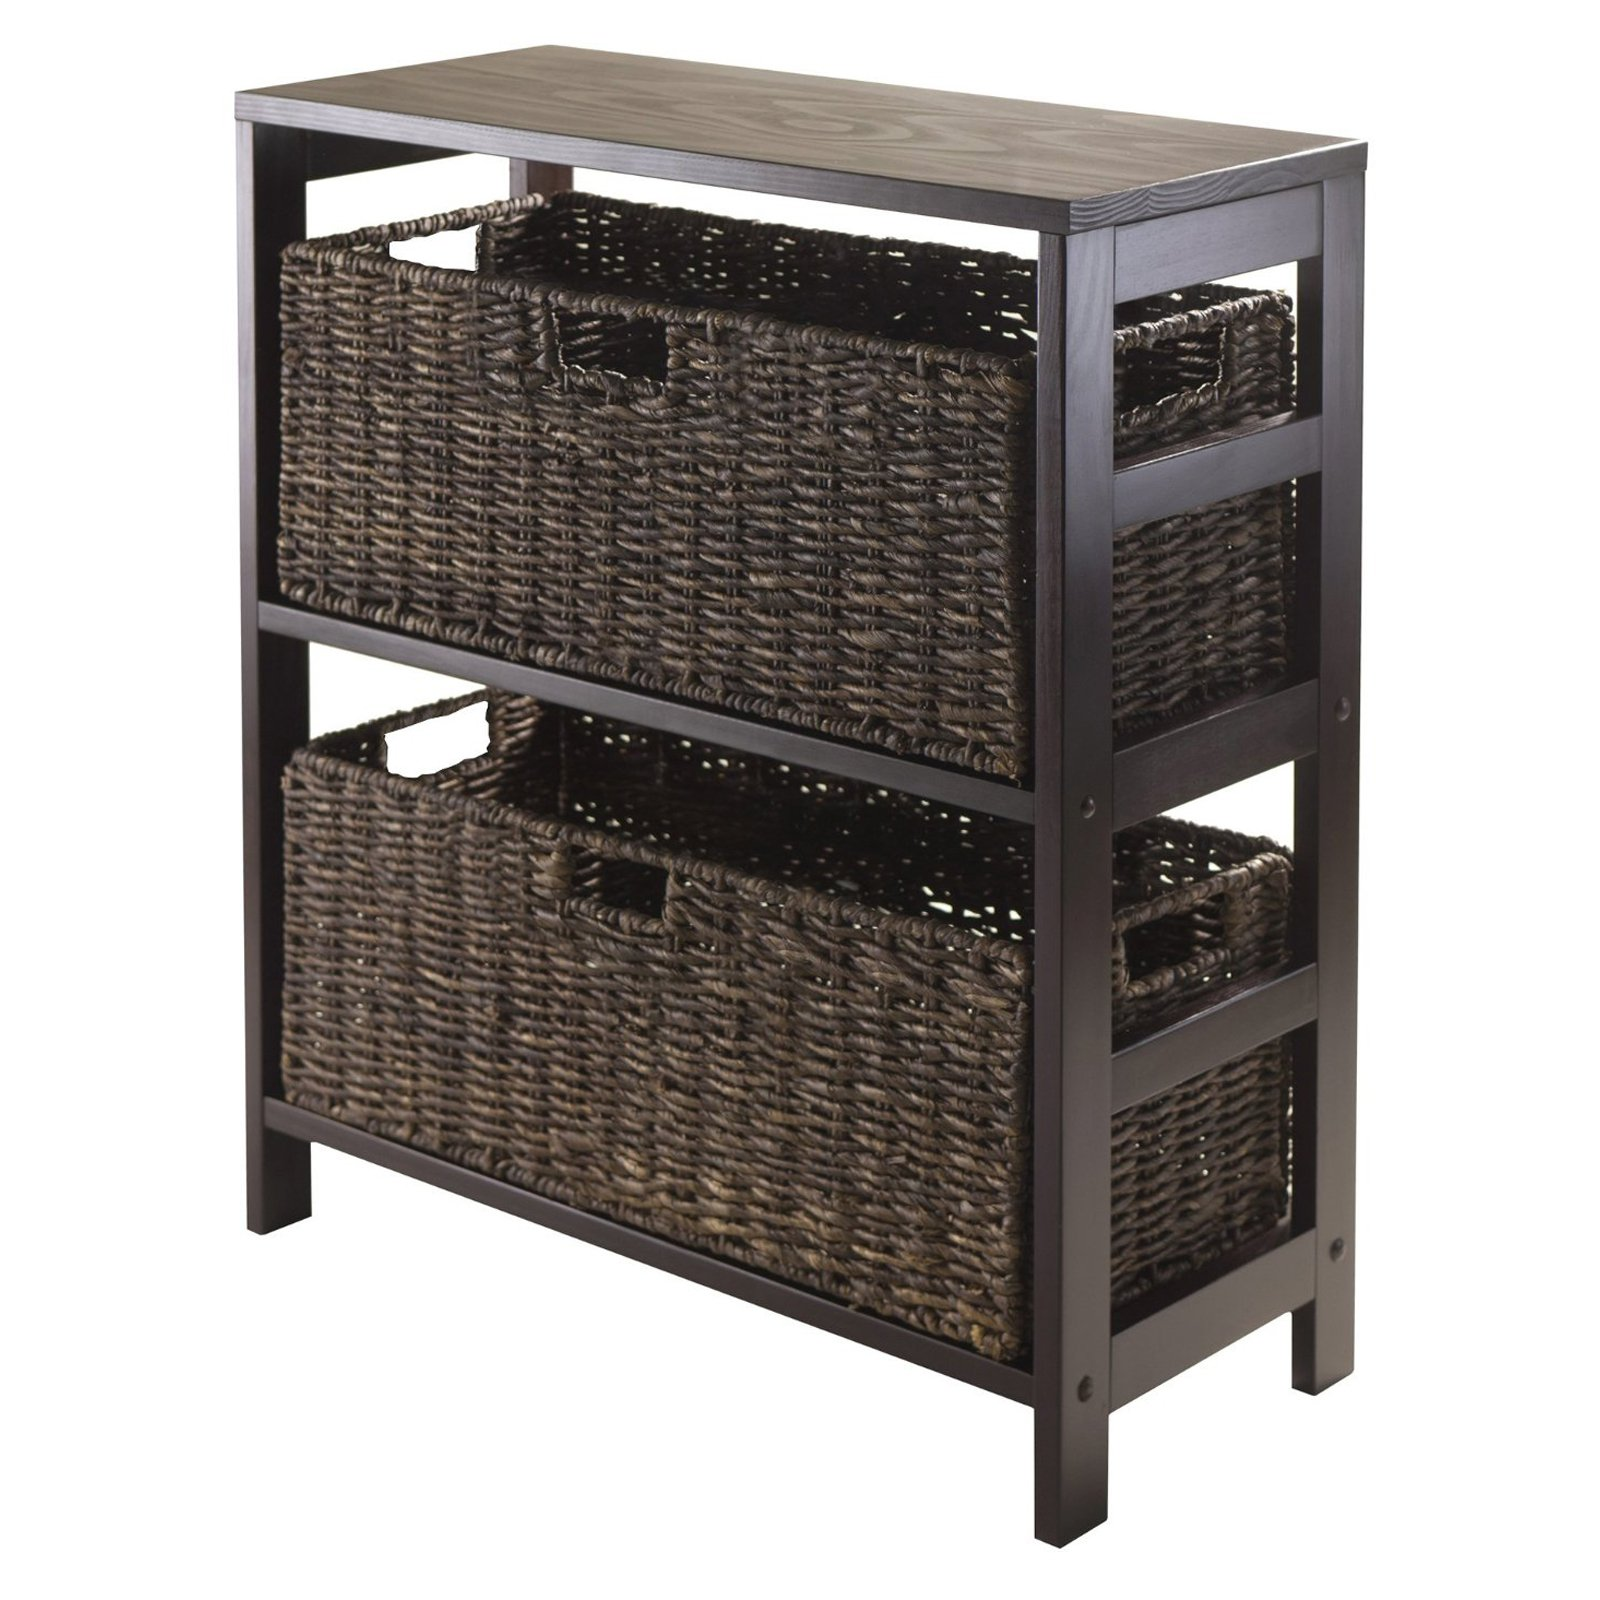 Winsome Granville 3 Piece Storage Shelf with 2 Large Baskets